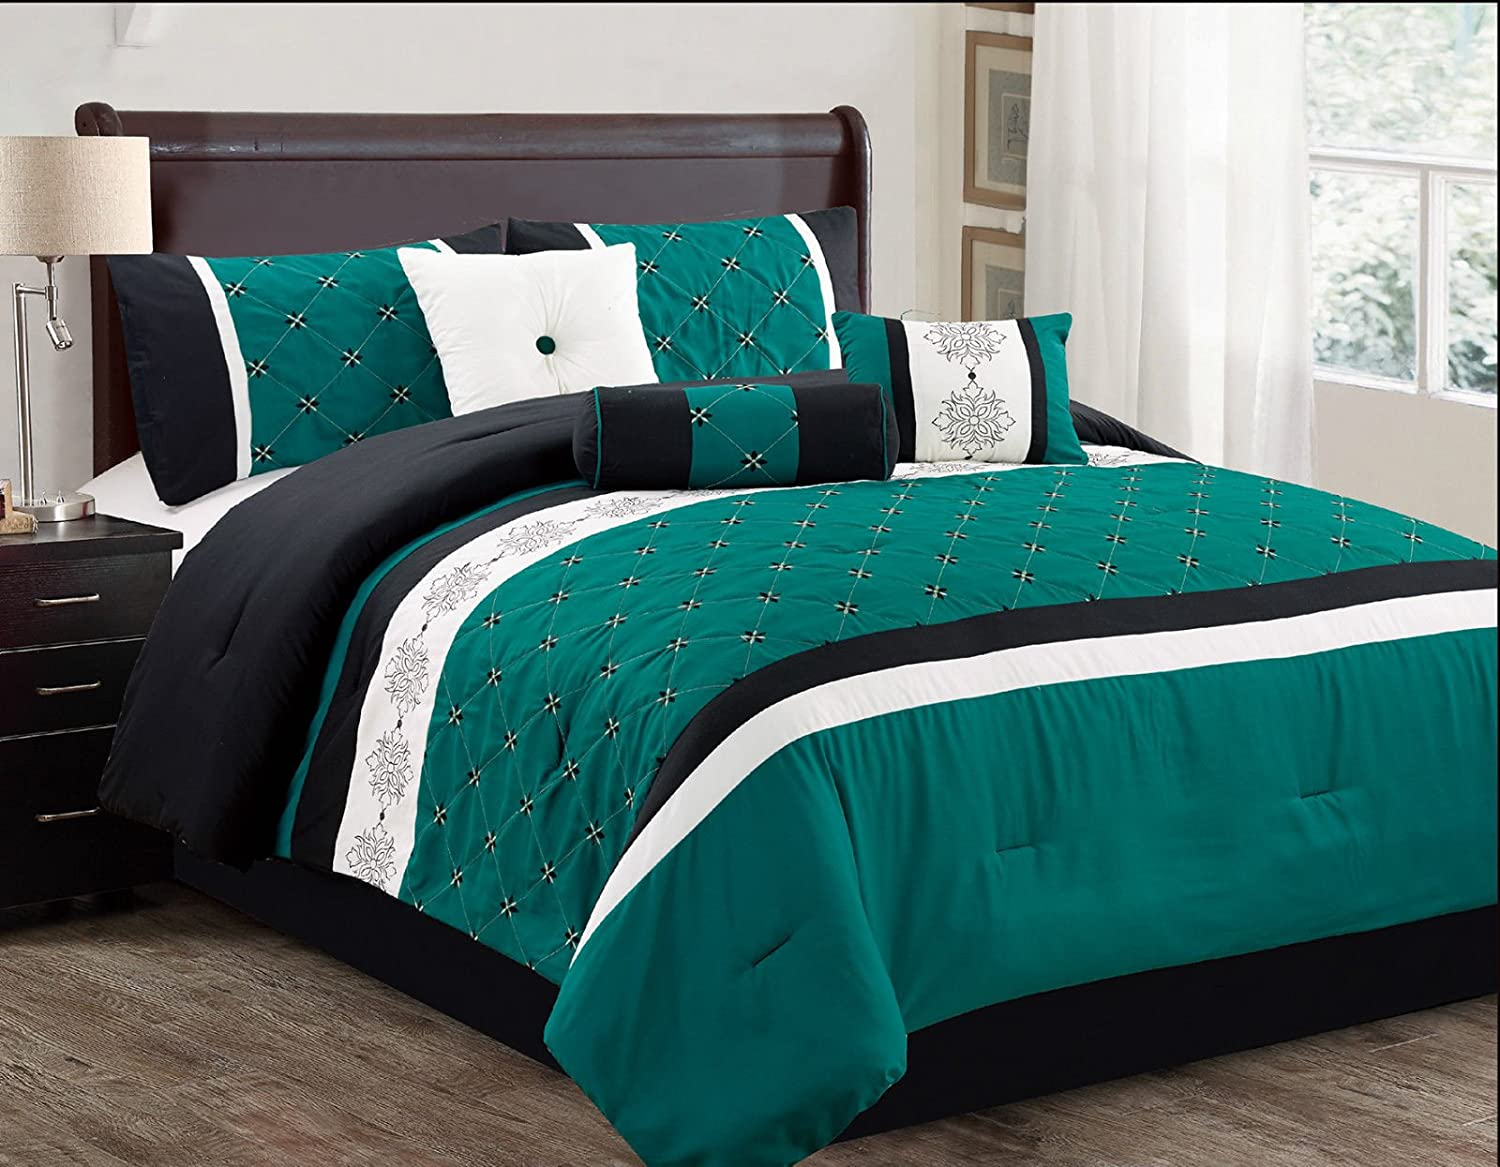 Black gray and green bedding bedding set stunning lime for 7p decoration